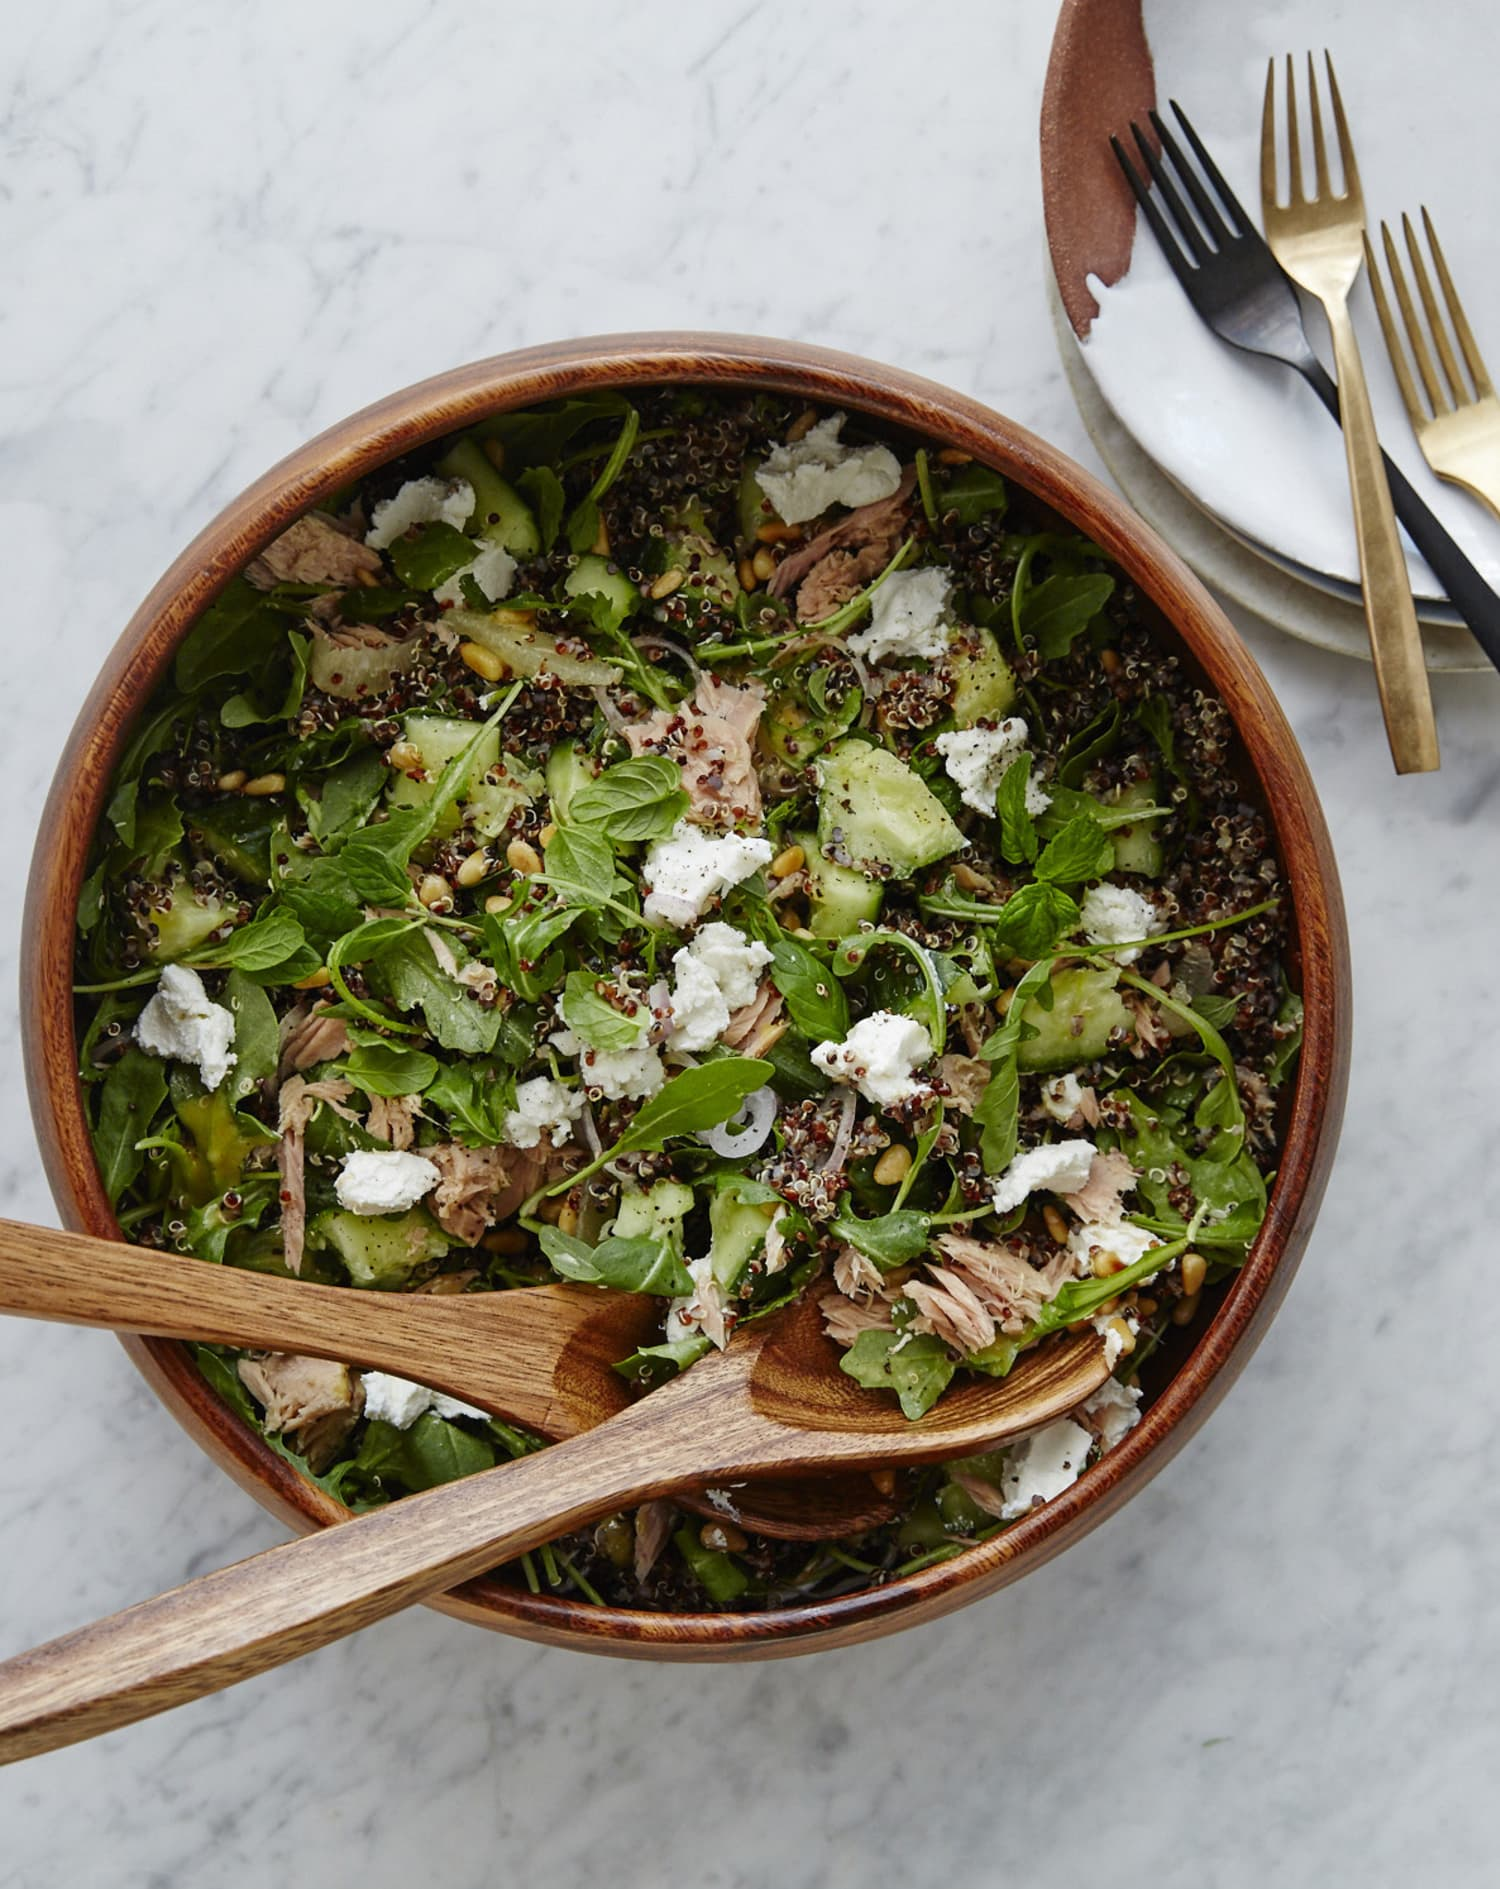 20 Satisfying Winter Salads to Eat for Dinner